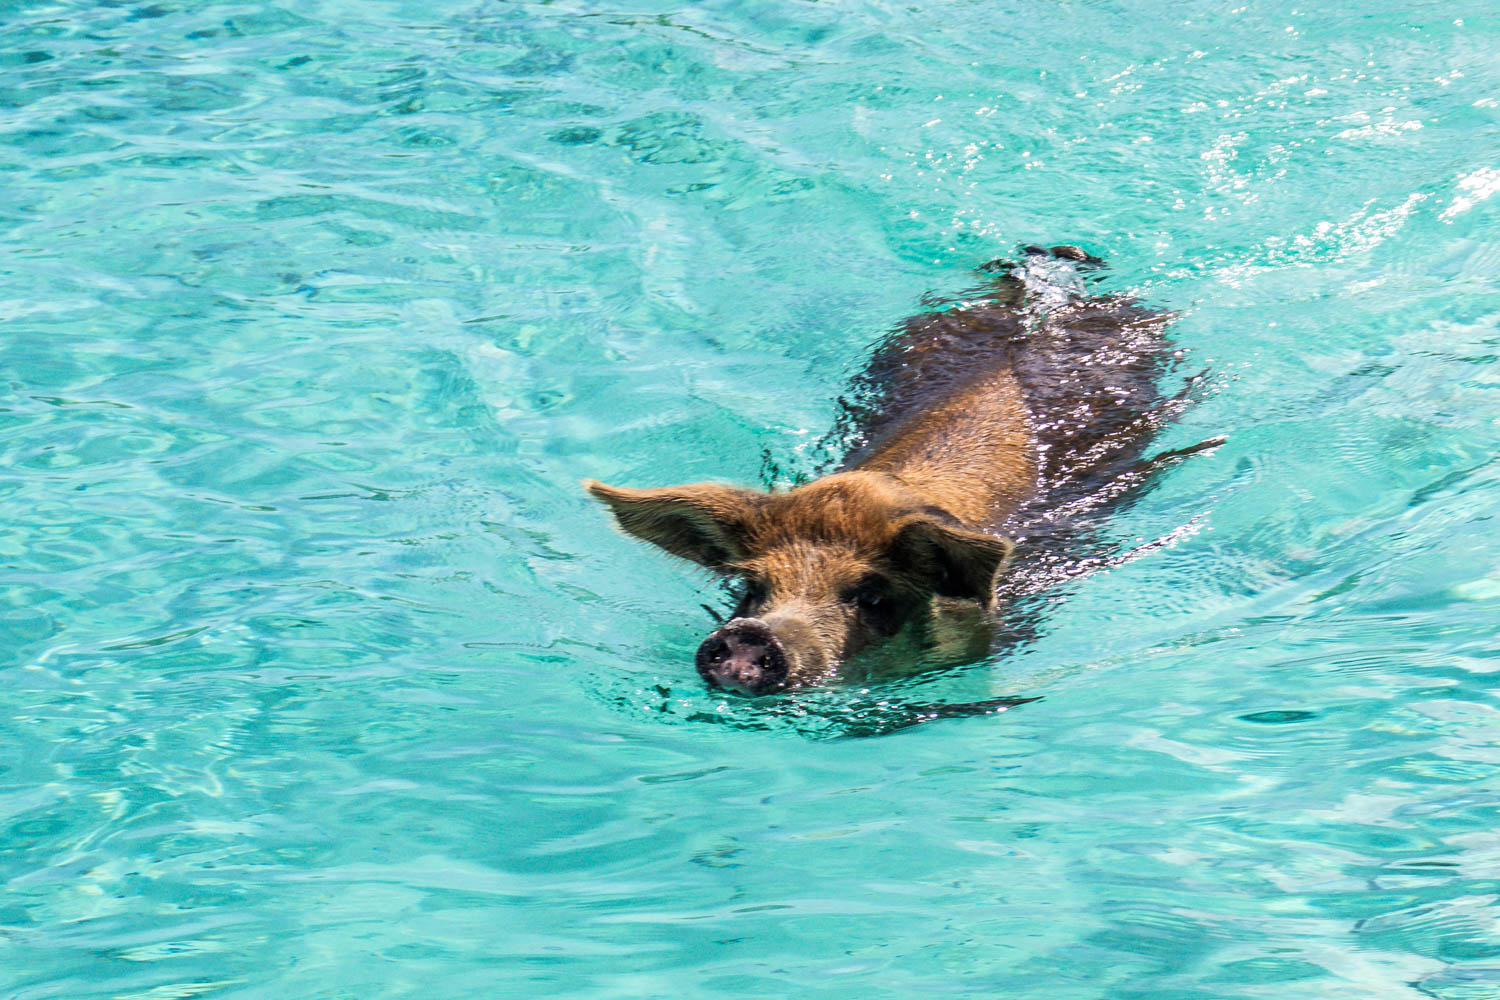 Everyone's favorite; the swimming pigs on day trips to Bahamas. A day trip to Bahamas from Fort Lauderdale is a fun trip for the whole family.